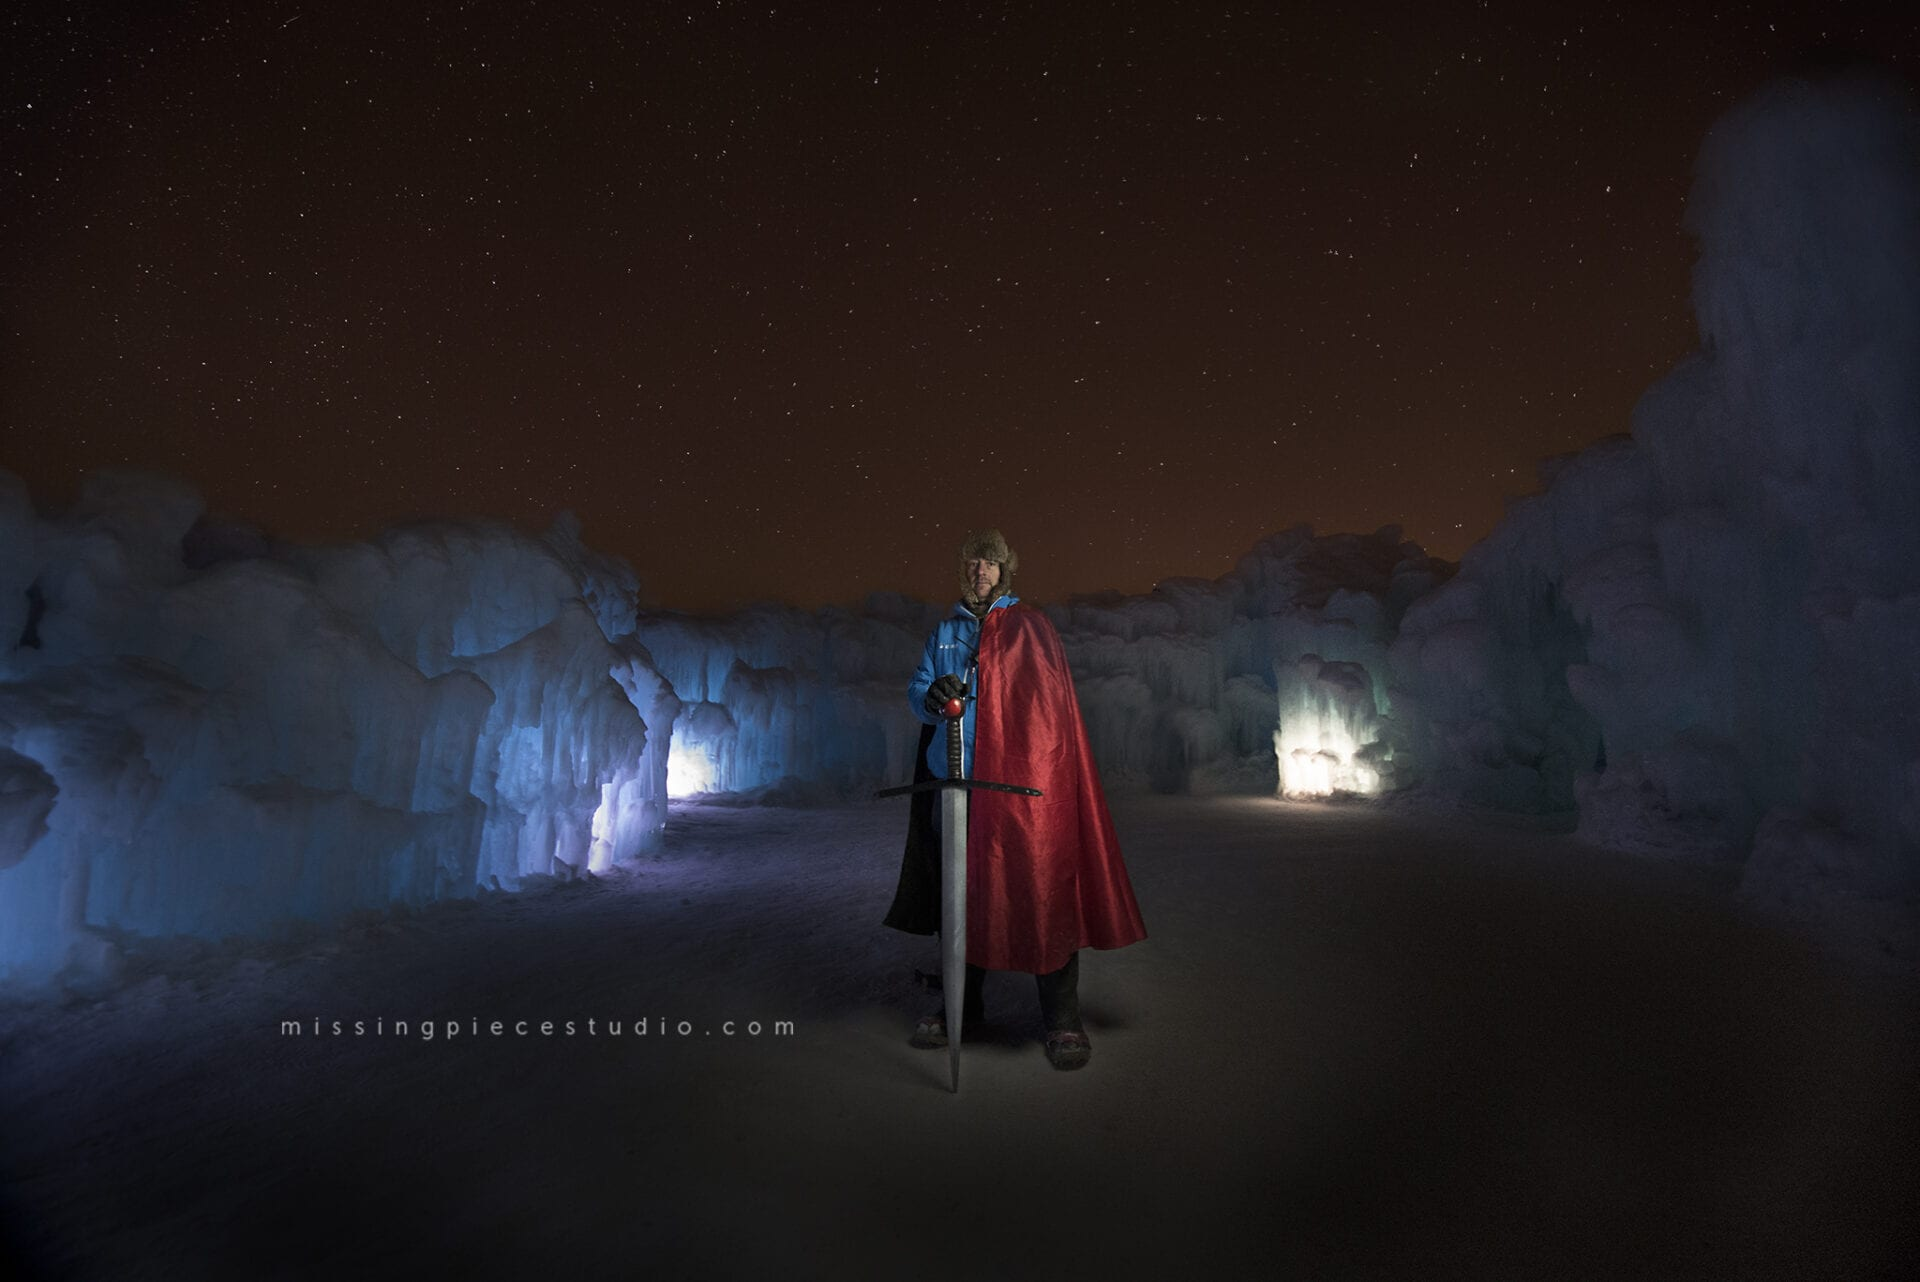 Ice castles staff dresses up as superman at the ice slide